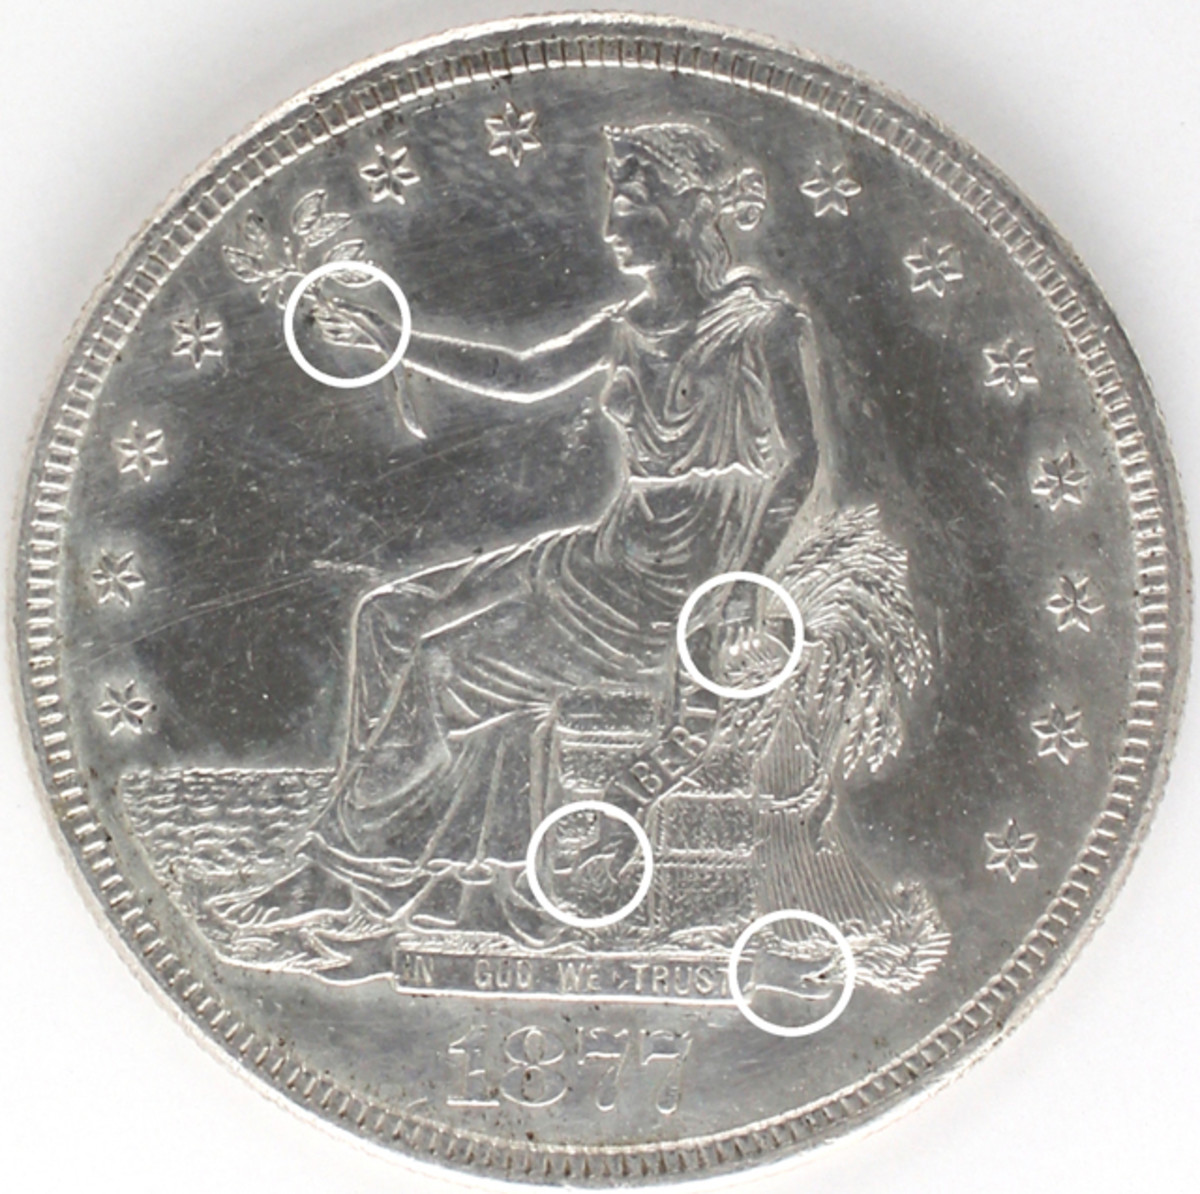 """Enlargements below are of the new unlisted hub type reverse for the Trade dollar. It has obverse 2M and Reverse 2M """"split-tail."""" The circled obverse areas are greatly enlarged and sometimes rotated to better see the design elements discussed."""